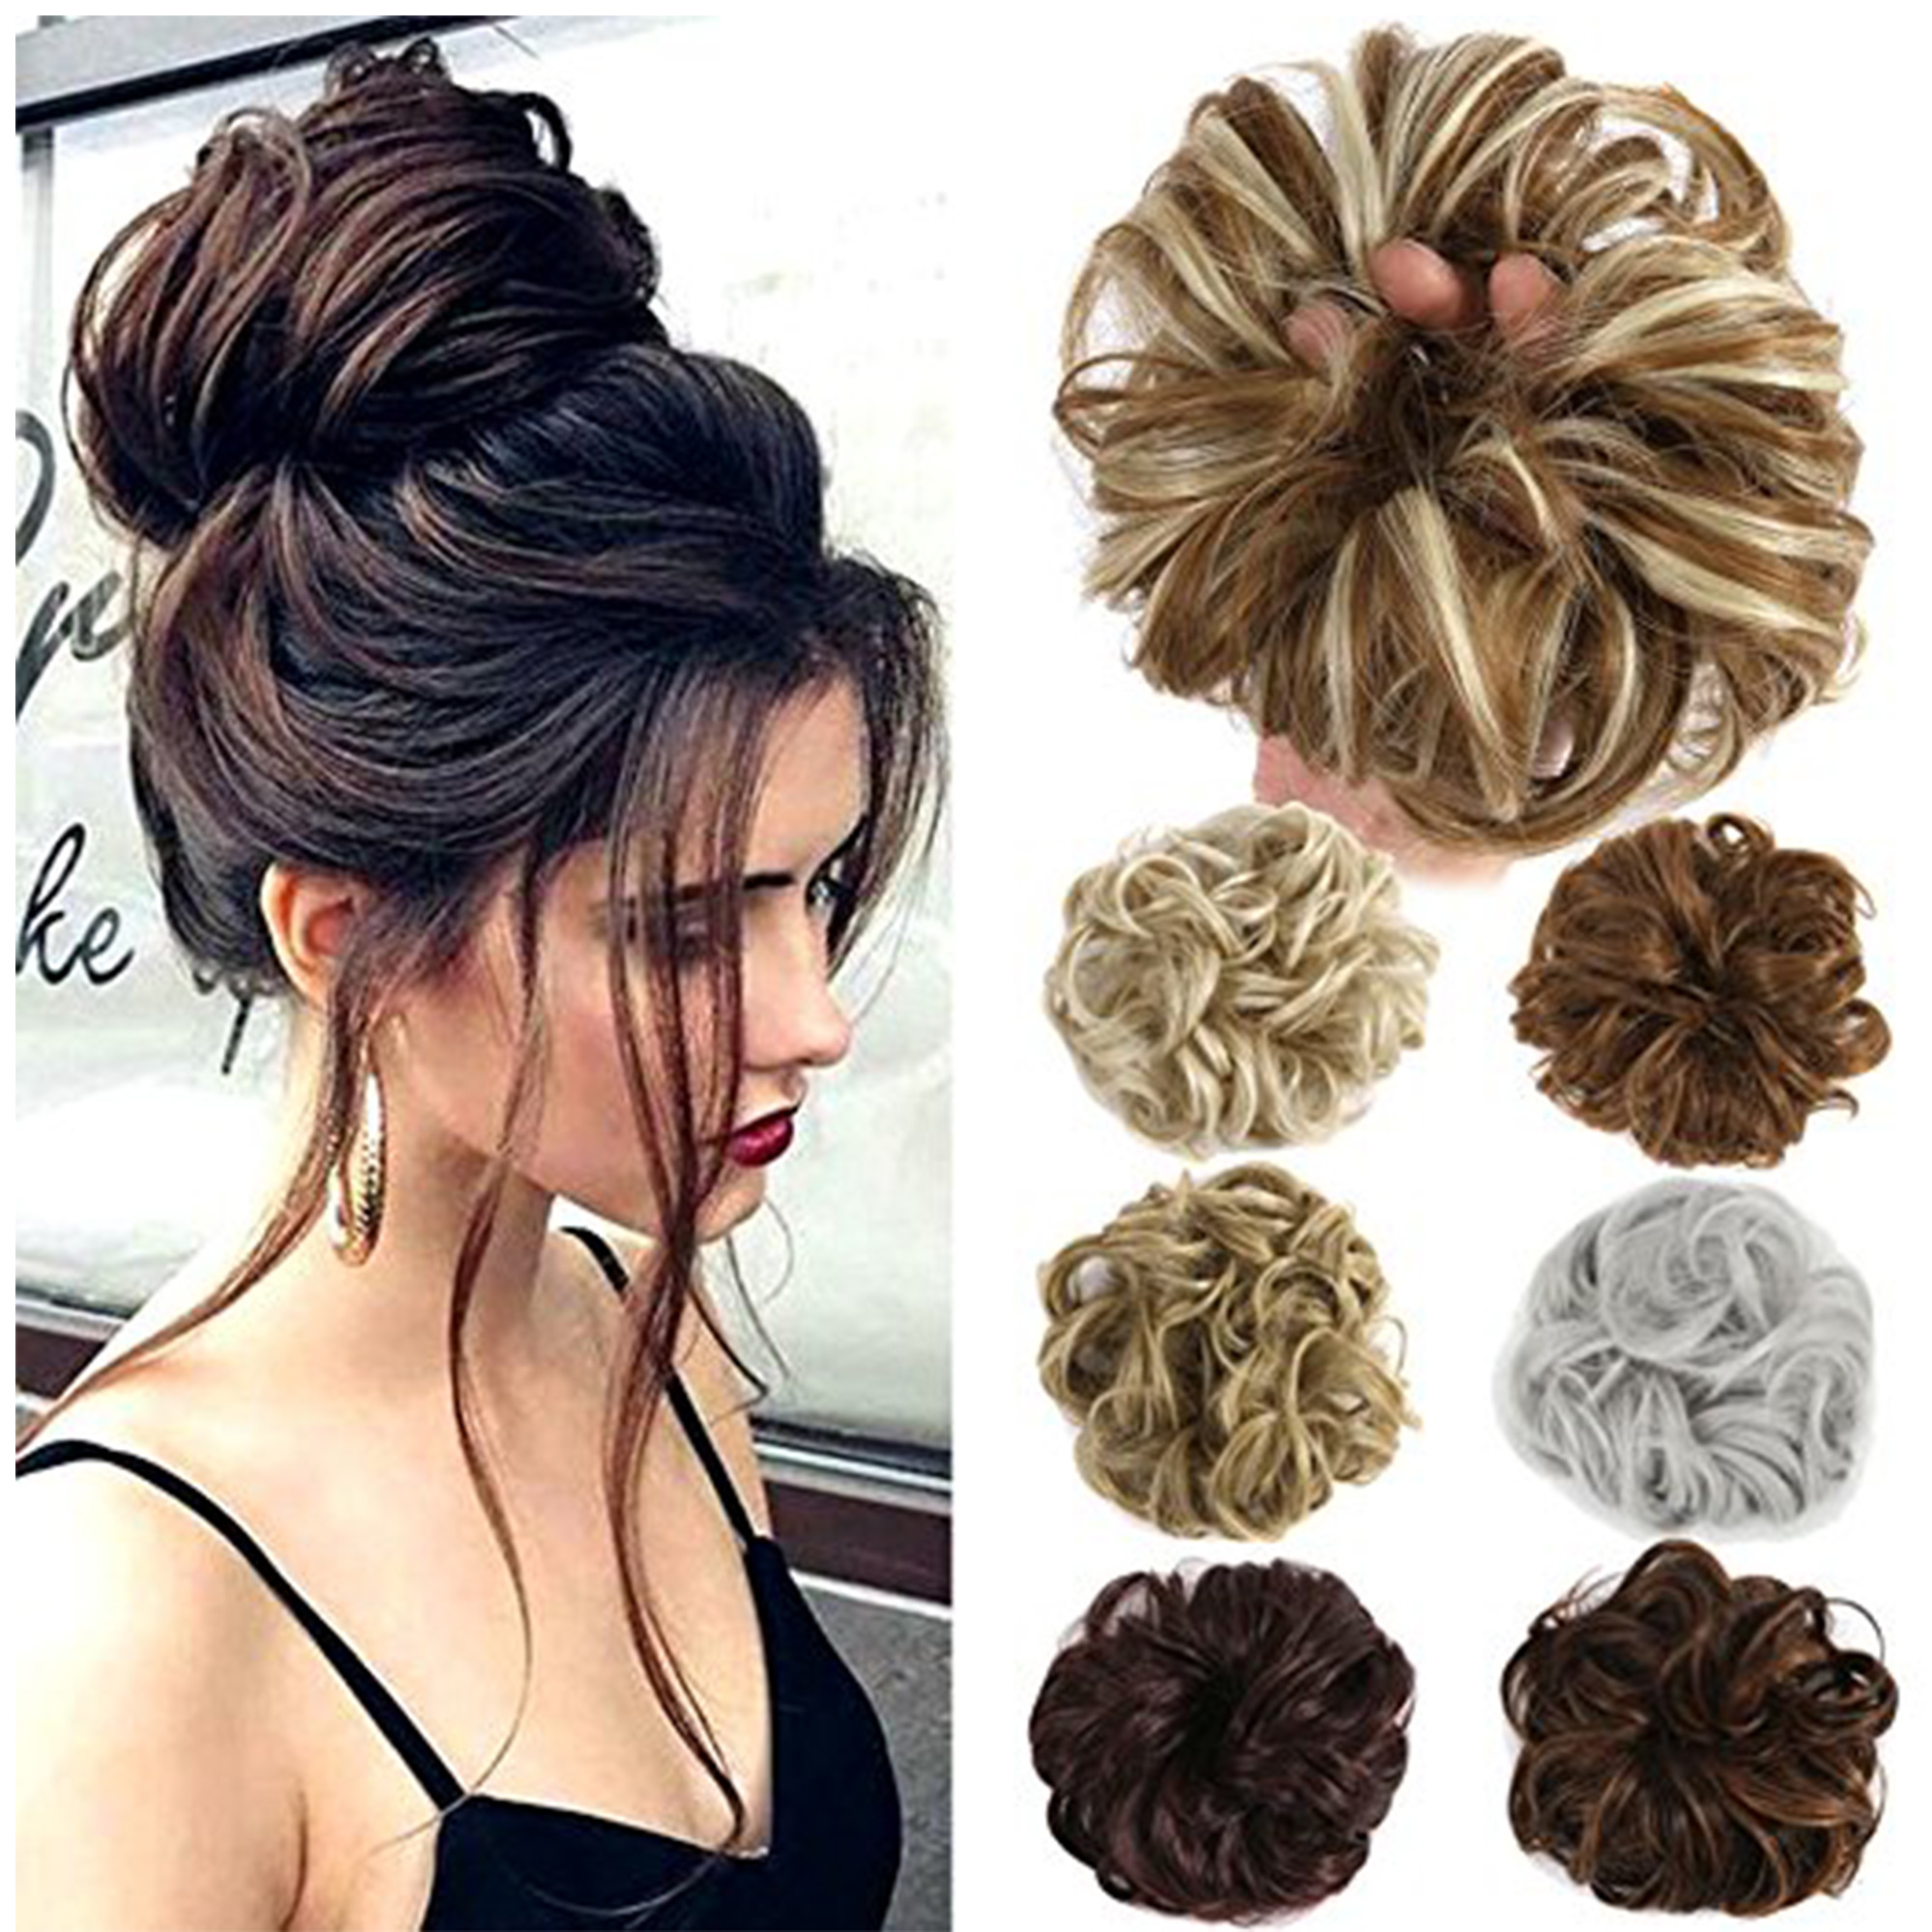 Wedding Hairstyle With Hair Extensions: FLORATA Ponytail Buns Wrap Bun Chignon Hair Extensions